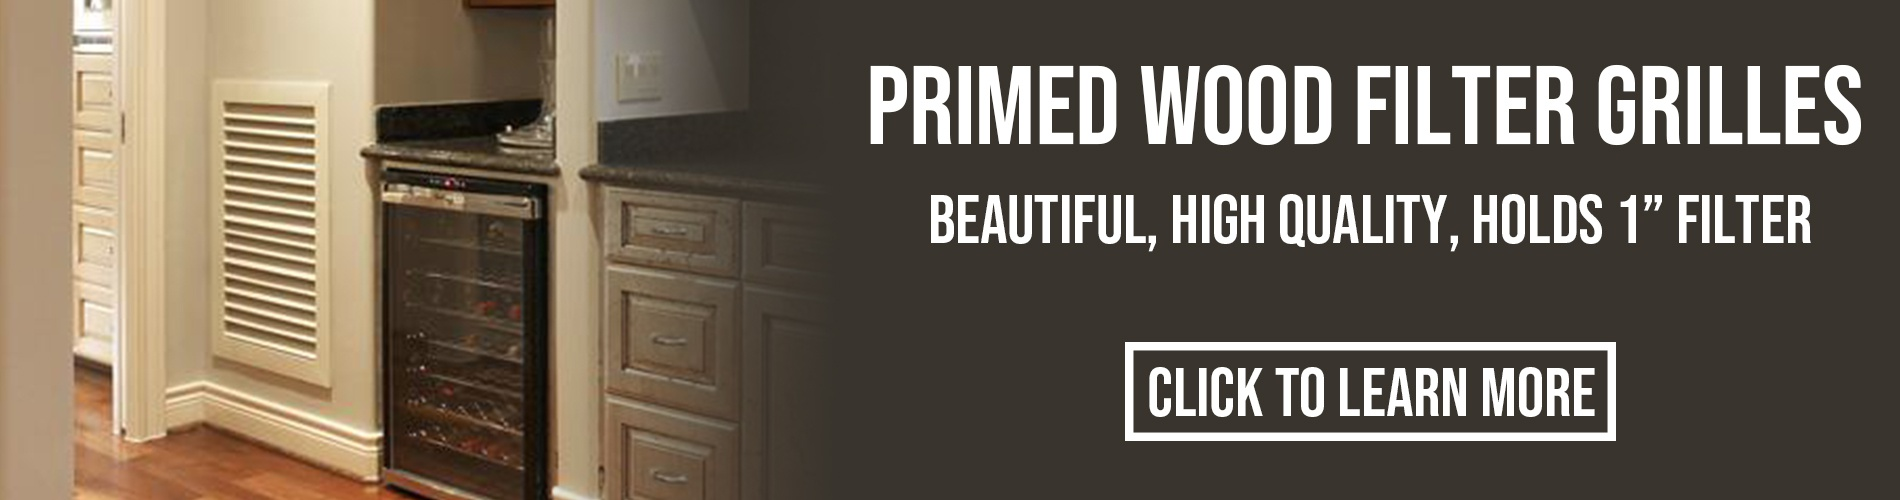 WHPGF Primed Wood Filter Grilles